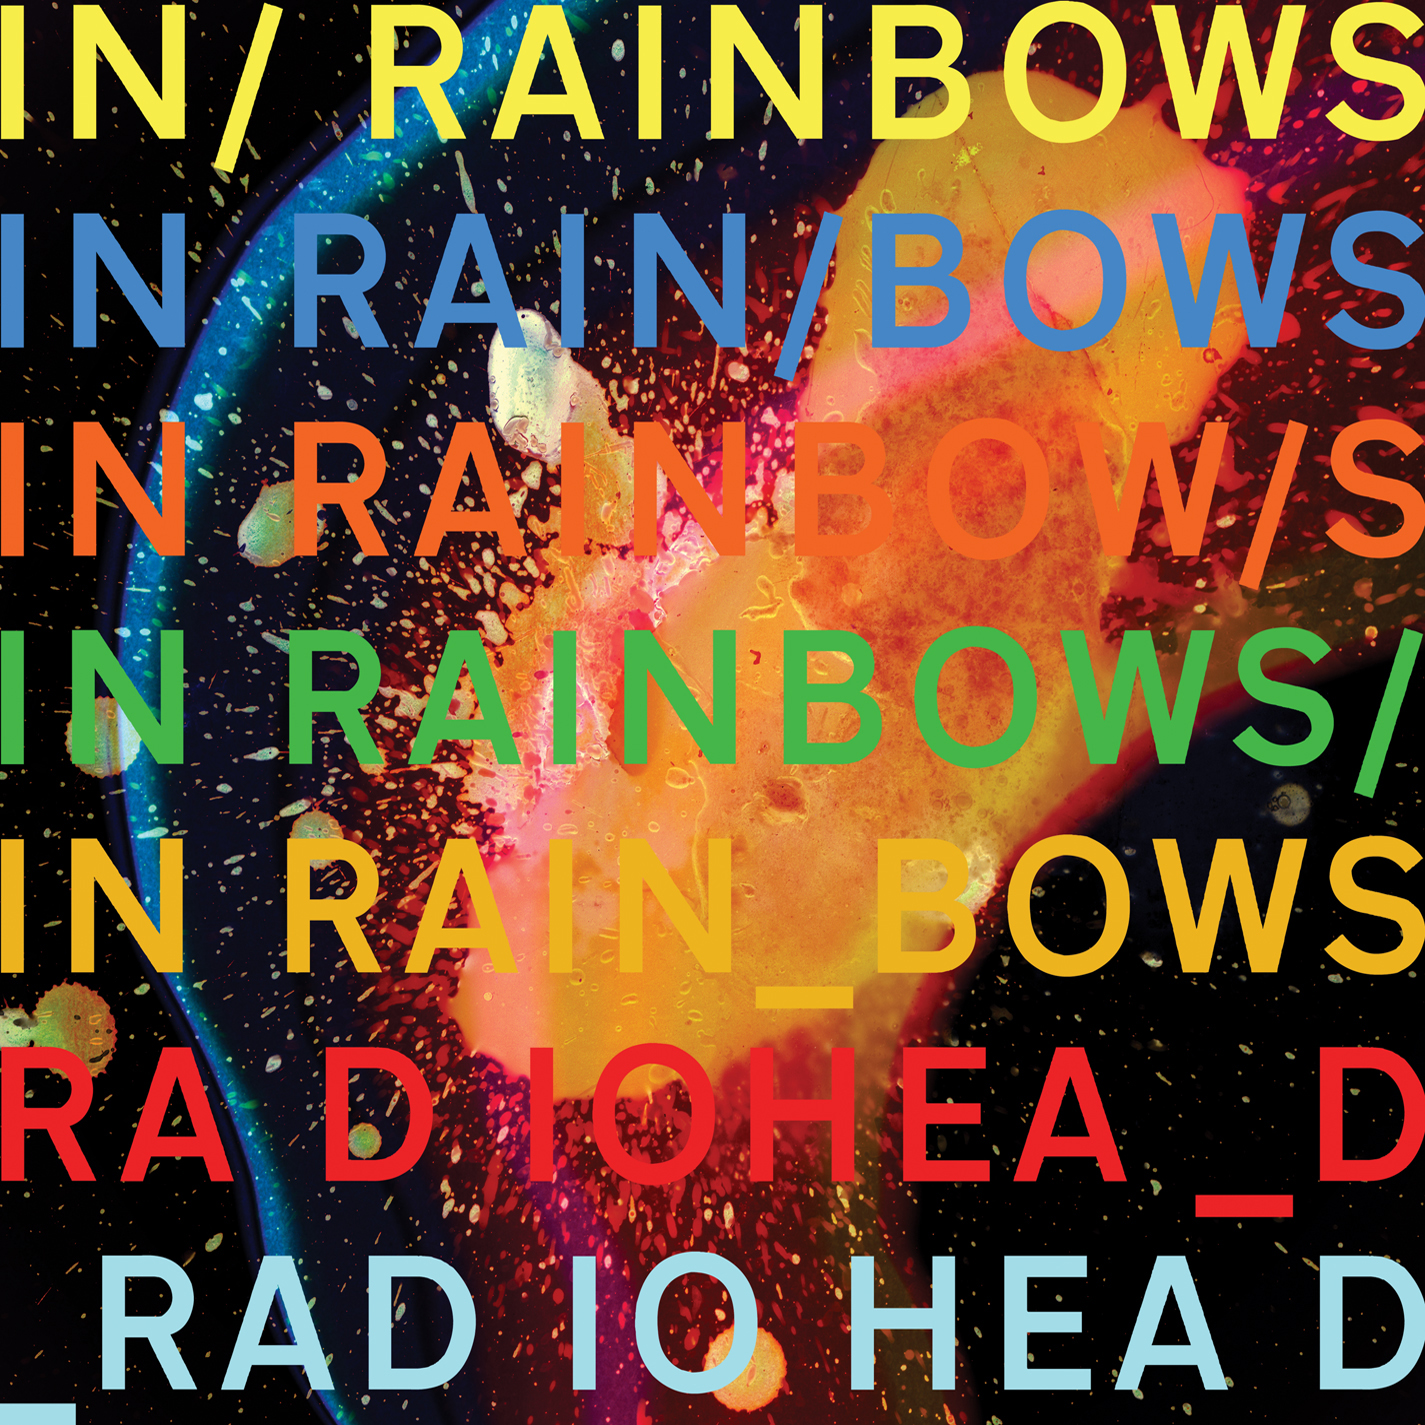 Radiohead In Rainbows, img from NLM by permission.